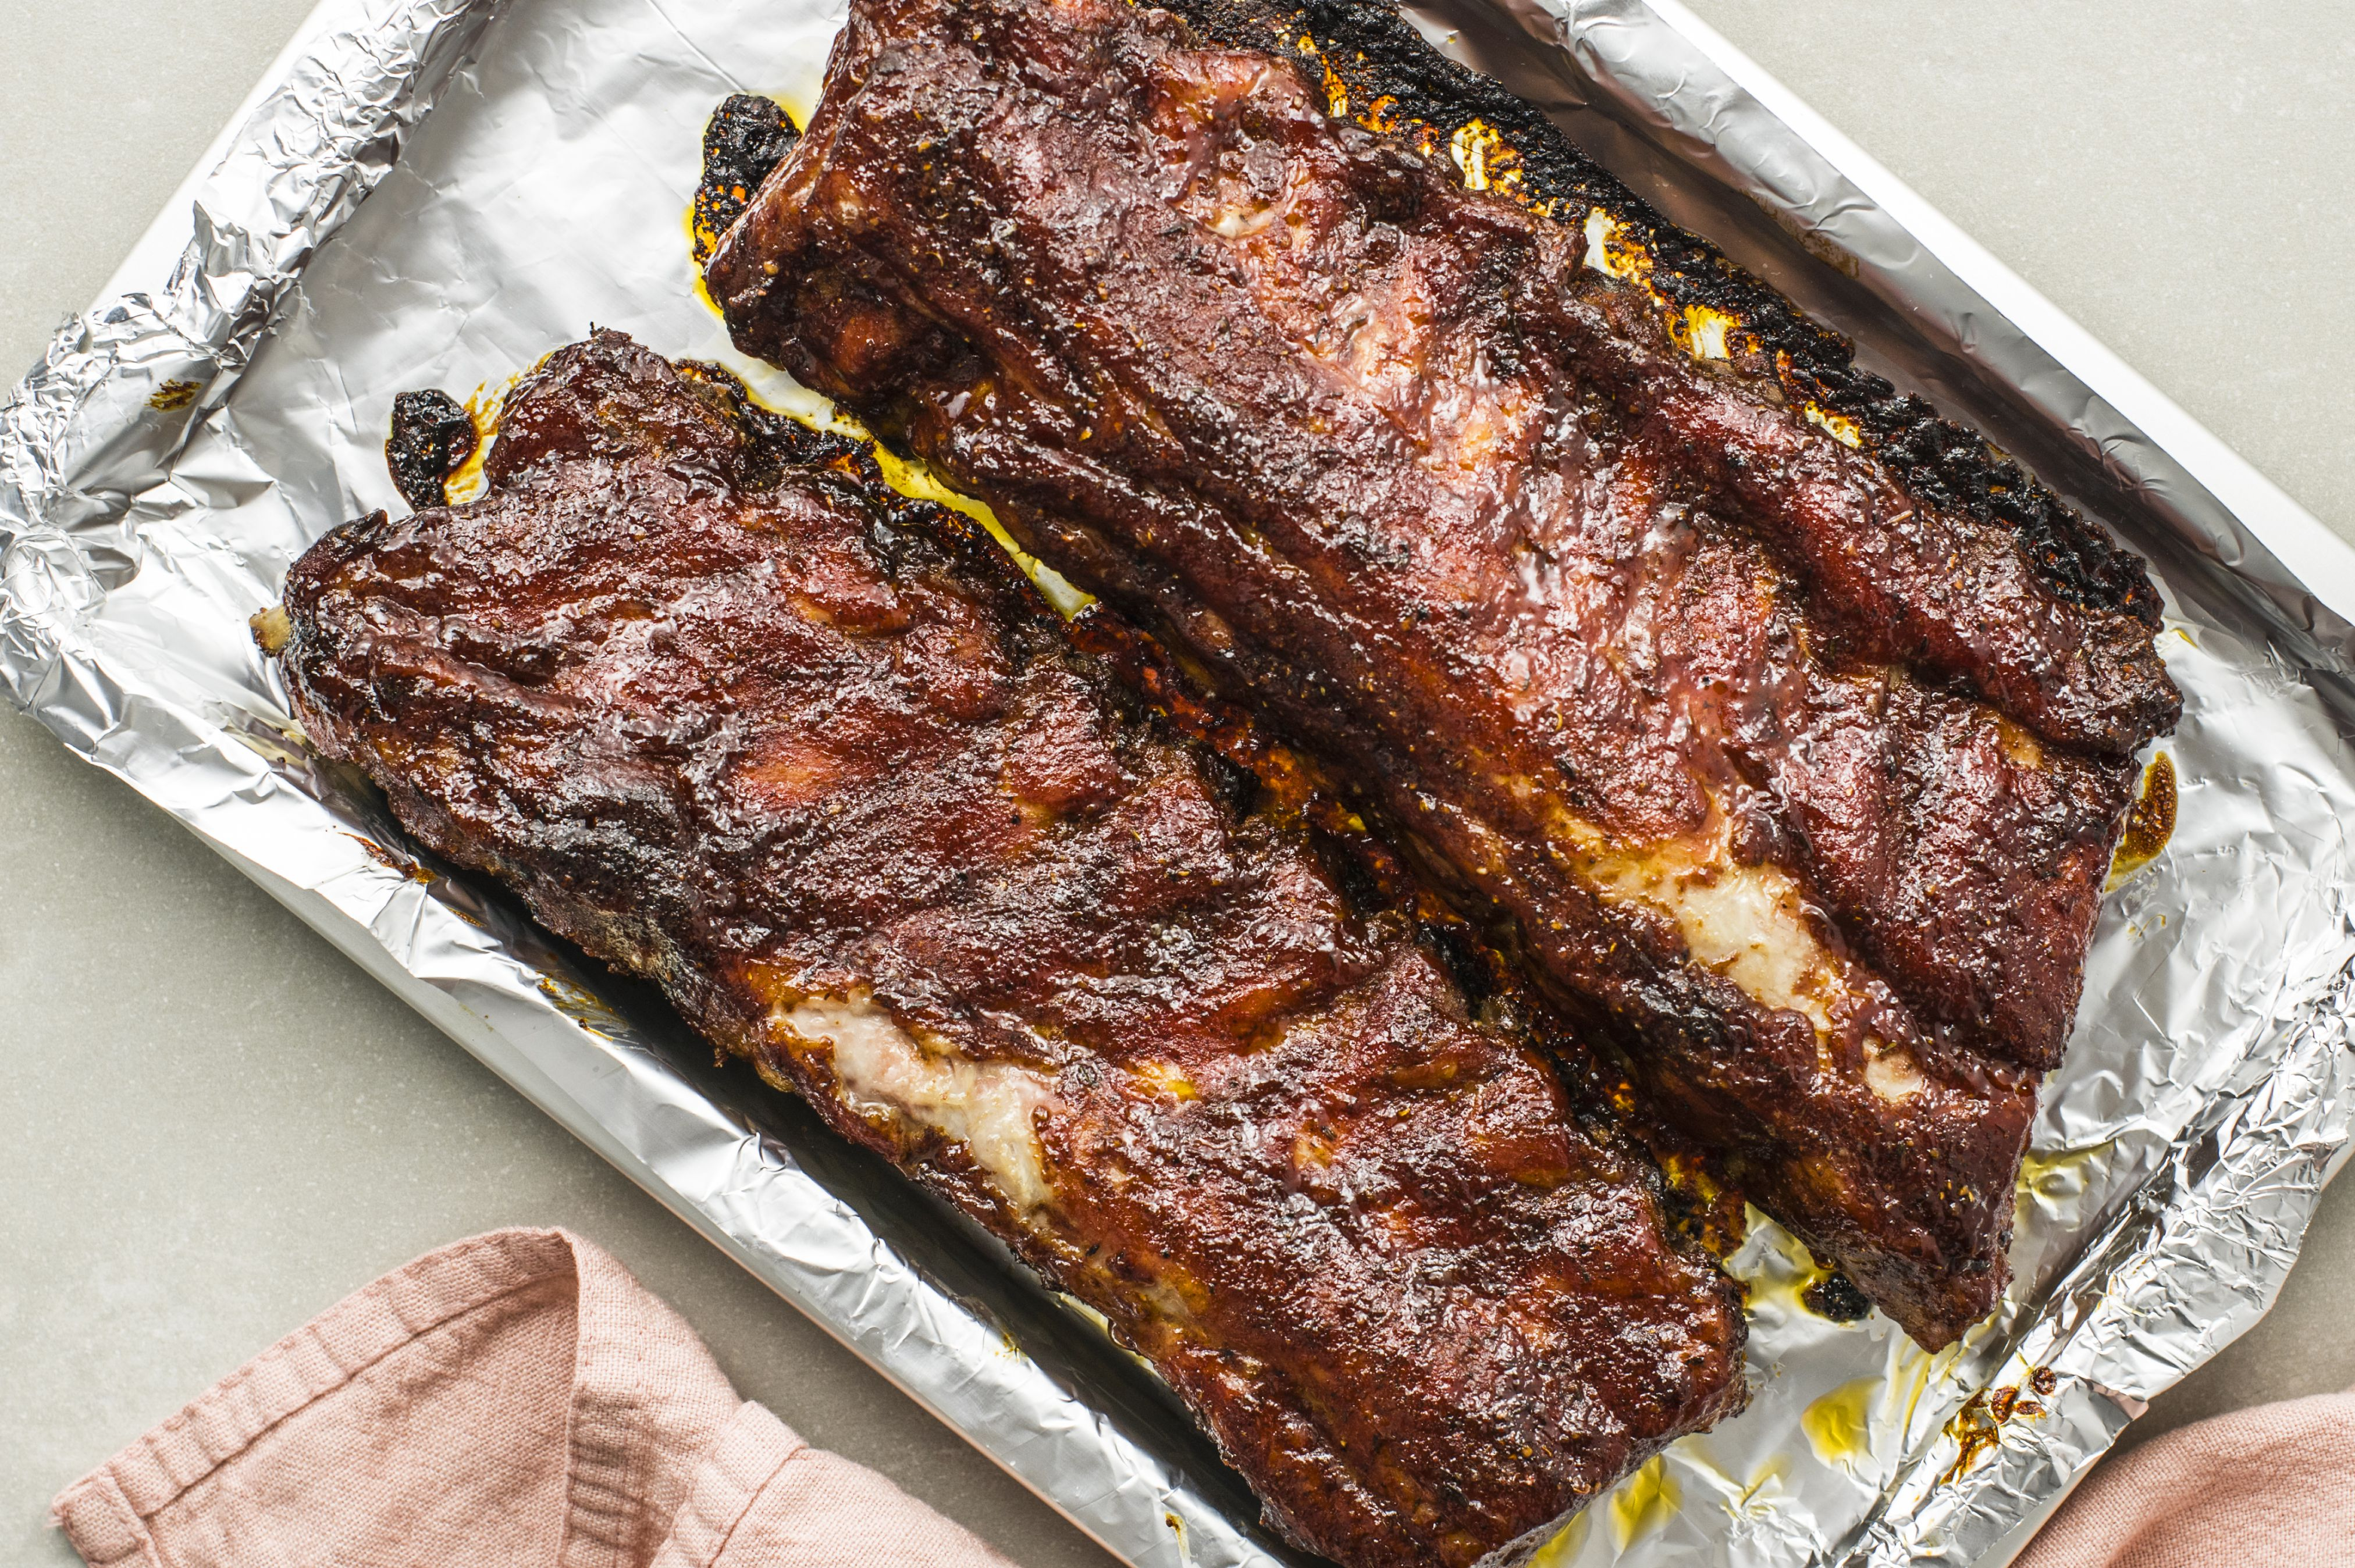 Baked ribs on a baking sheet